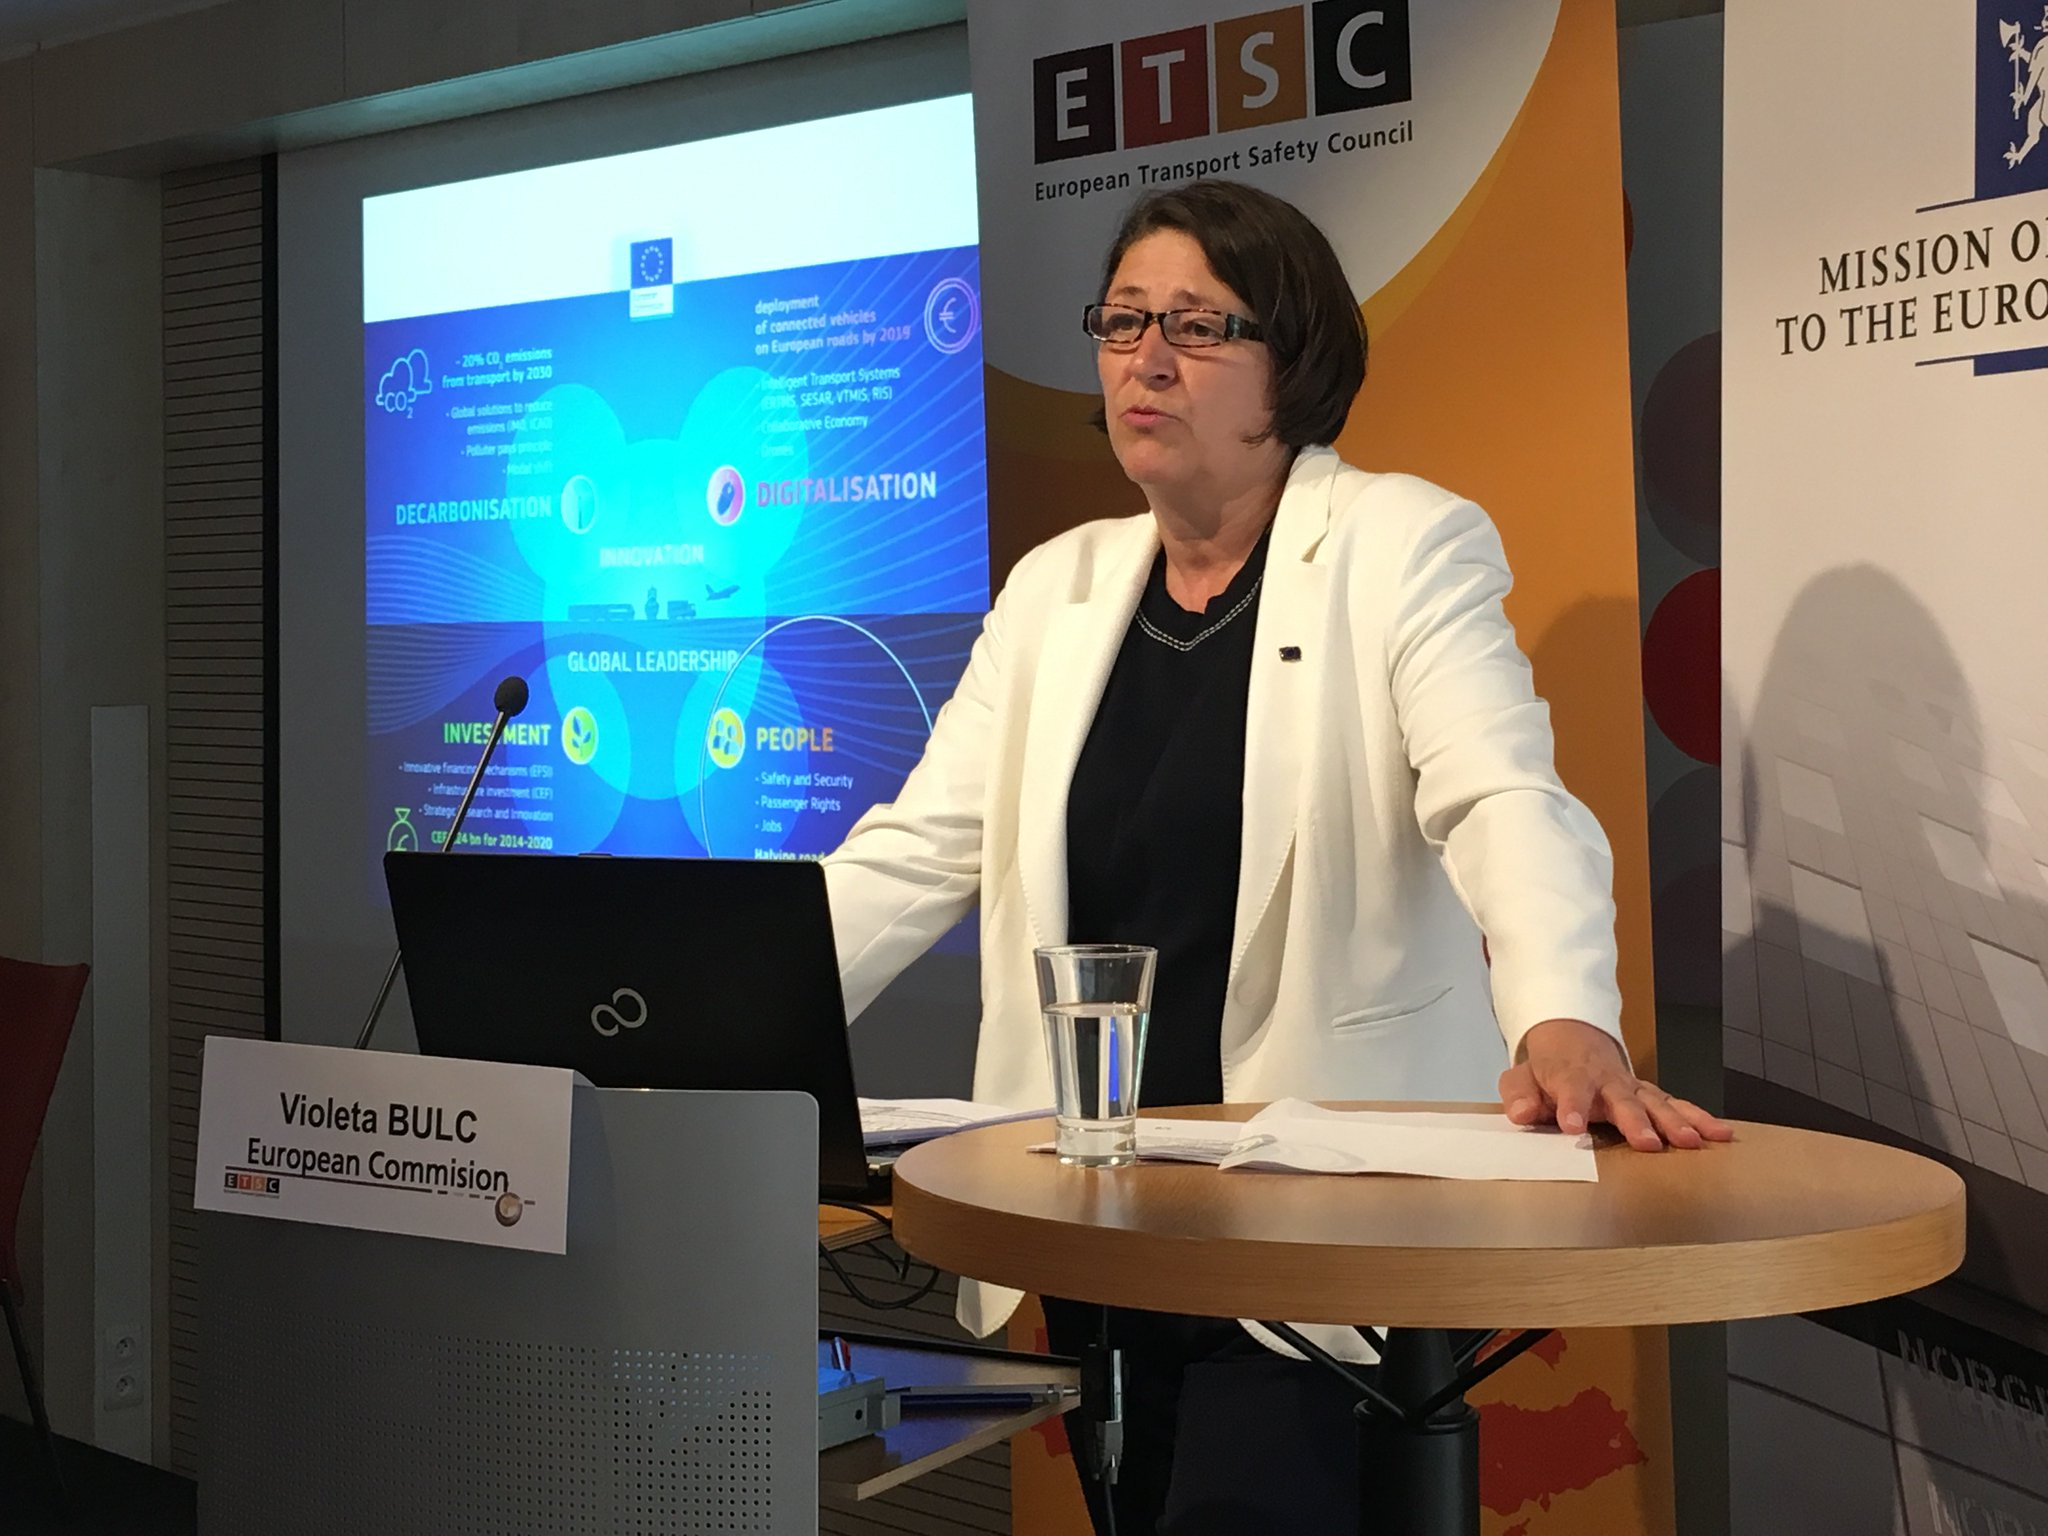 'We have to talk about zero fatalities', says @Bulc_EU #pin2017 https://t.co/3IwCXSgosS